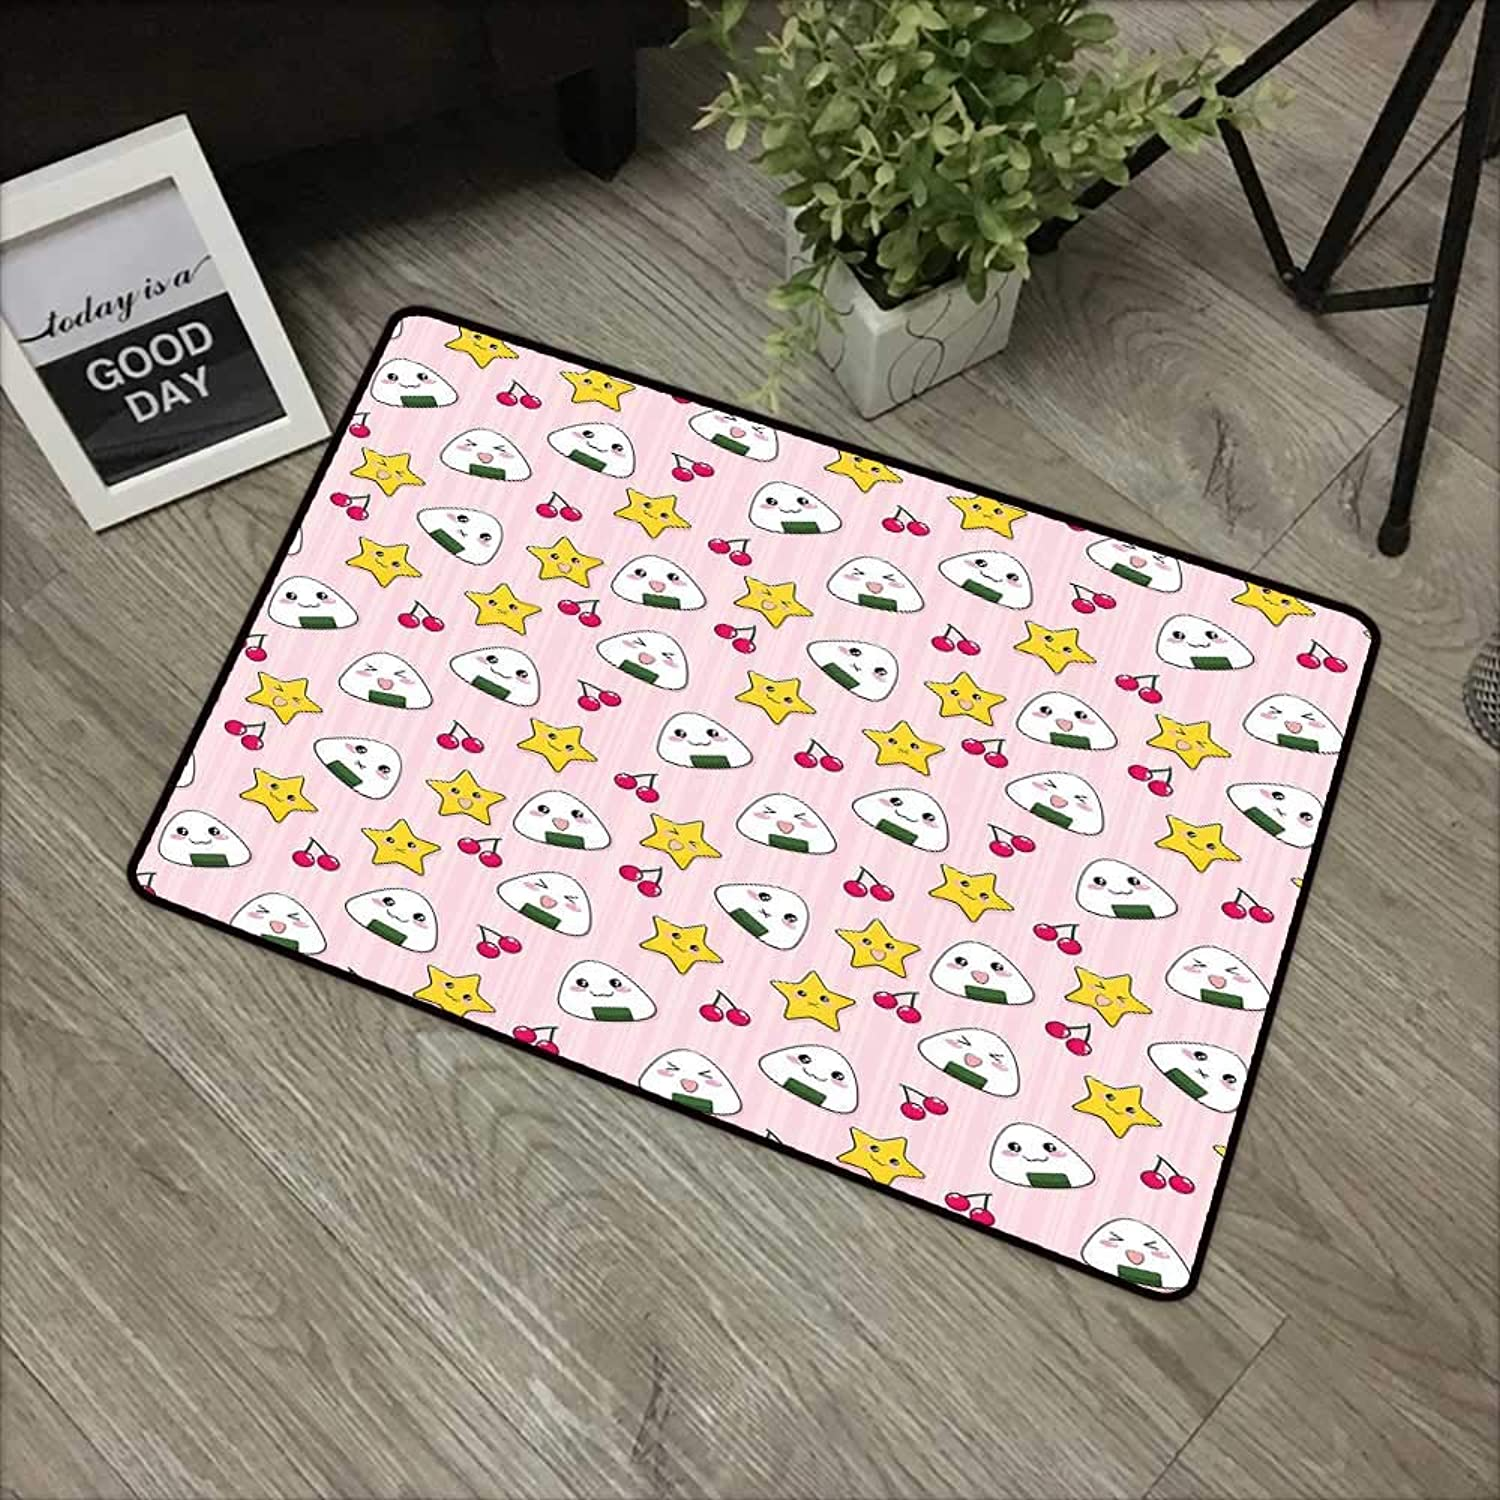 Bathroom mat W35 x L59 INCH Kids,Cute Japanese Food Icons Rice Ball Cherries Asian Kawaii Anime Pattern Design,Pink Multicolor Non-Slip, with Non-Slip Backing,Non-Slip Door Mat Carpet